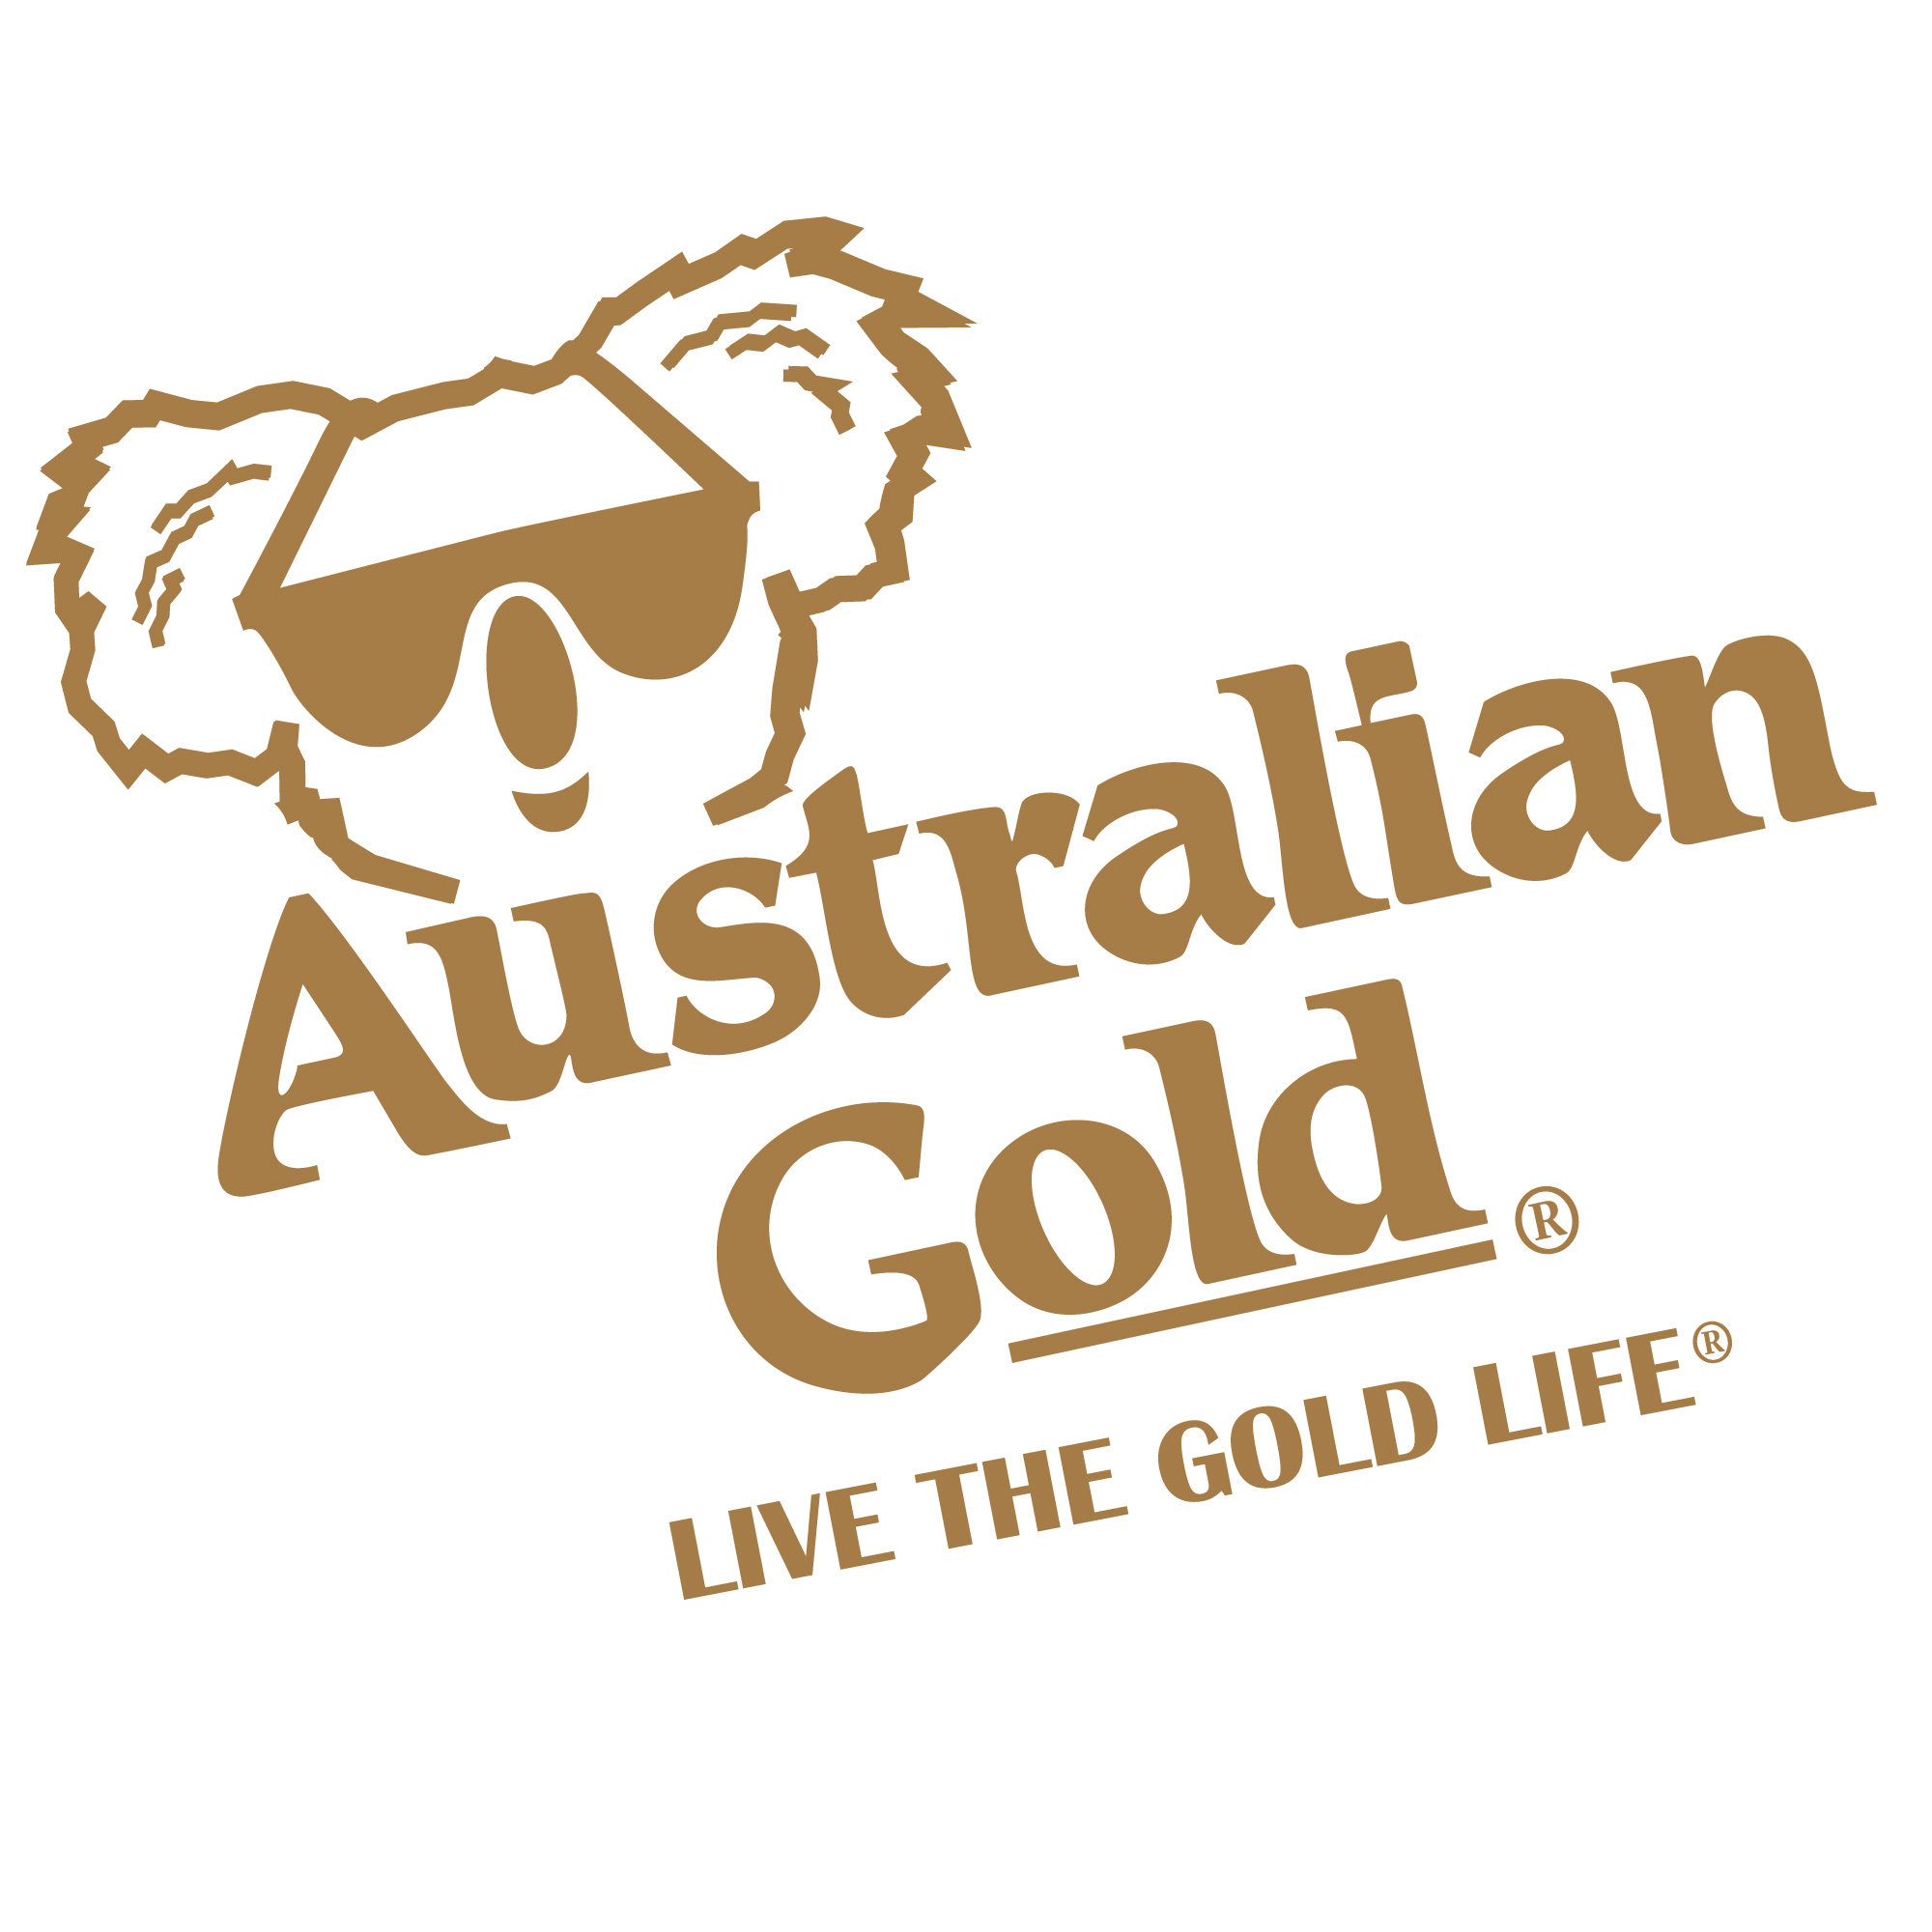 Australian Gold- Tanning Products - Australian Gold offers a full complement of superior in-door tanning products that will help you keep a radiant, bronze glow all year long.Whether you're a first time tanner or in need of a plateau breaker, Australian Gold offers revolutionary tanning products that provide advanced bronzing technology while enhancing your skin's natural beauty with hydrating conditioners. To learn more about the complete line of Australian Gold products, go to:www.australiangold.com